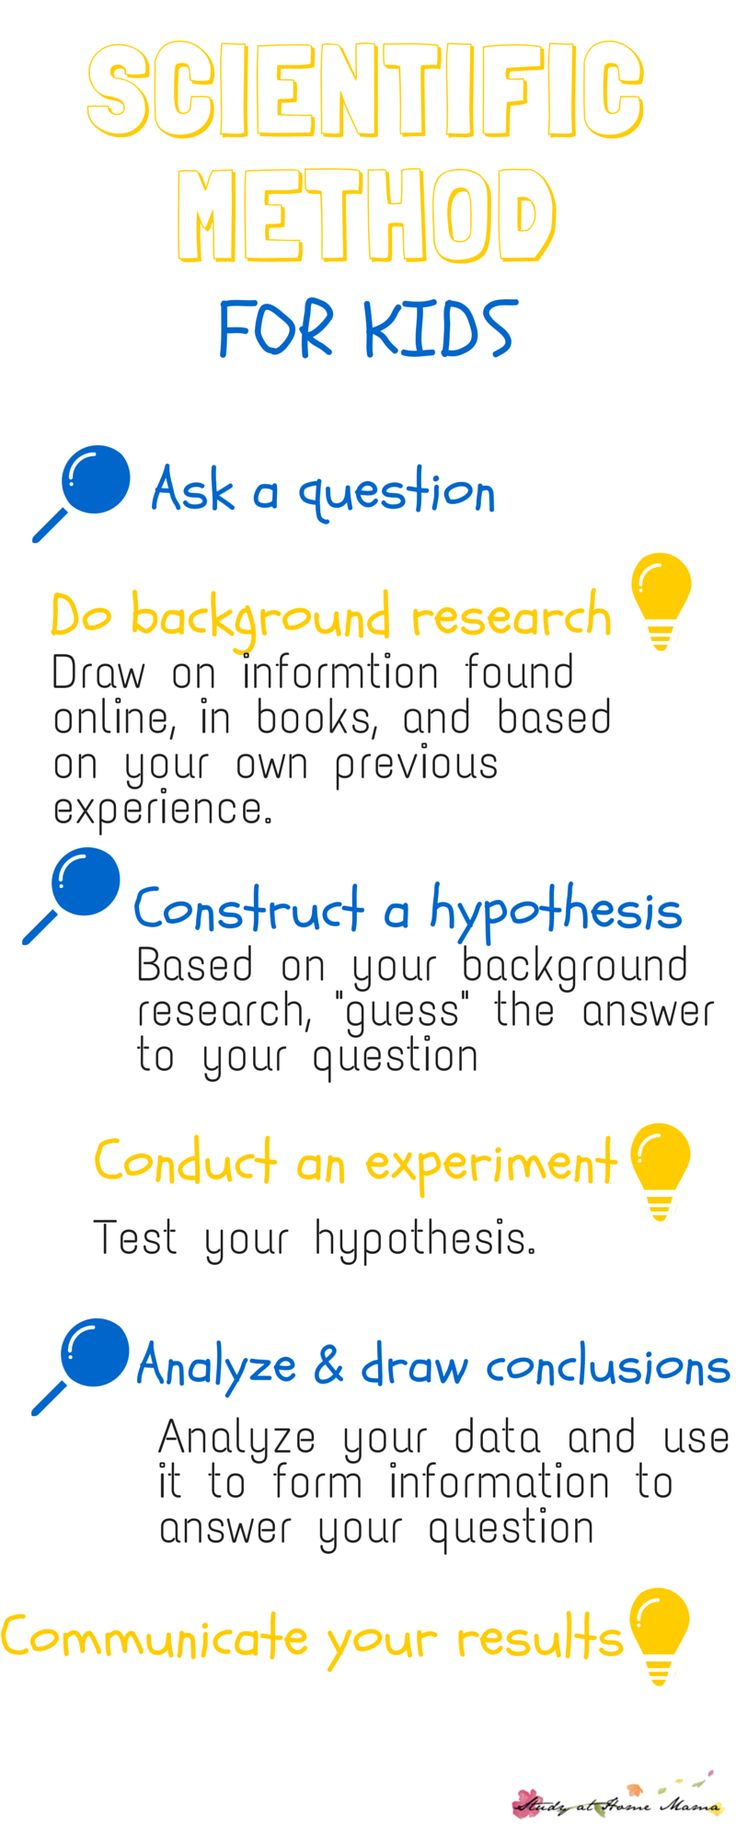 free and easy science experiment steps Find science fair projects, step-by-step instructions, free science fair project ideas, topics, and examples plus science articles for kids, science projects & easy experiments, and our kids science magazine.